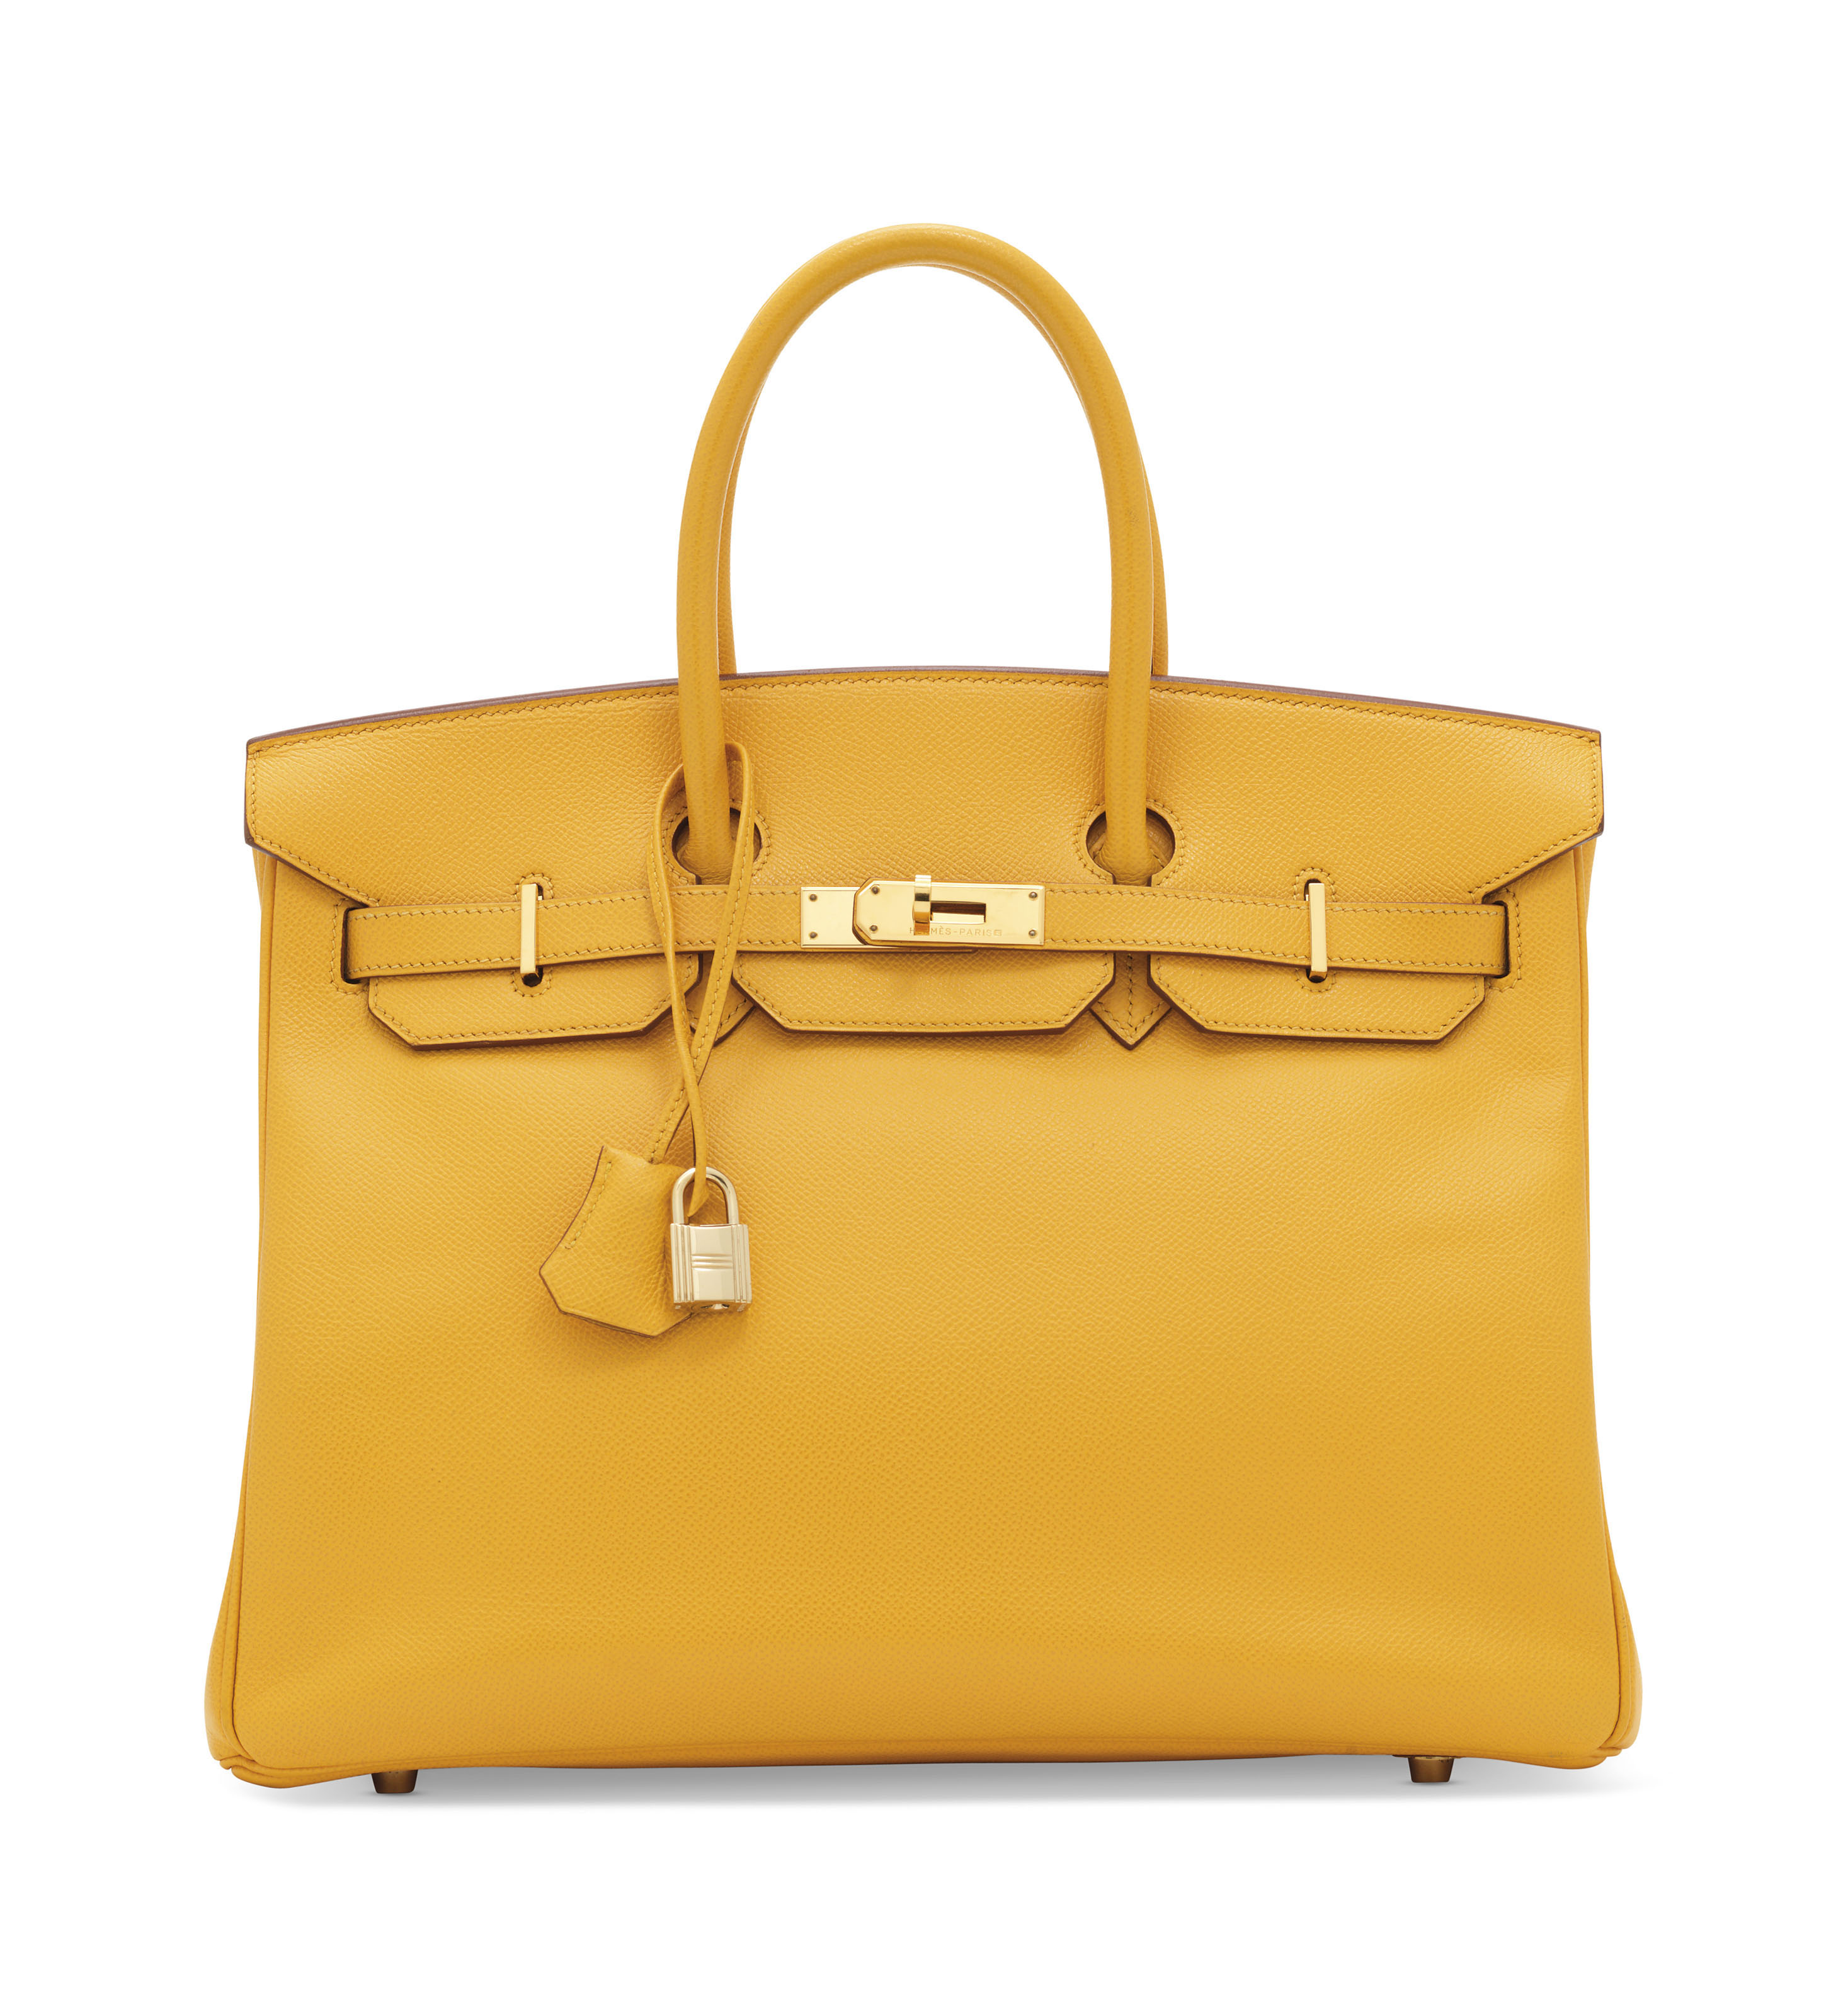 A JAUNE COURCHEVEL LEATHER BIR